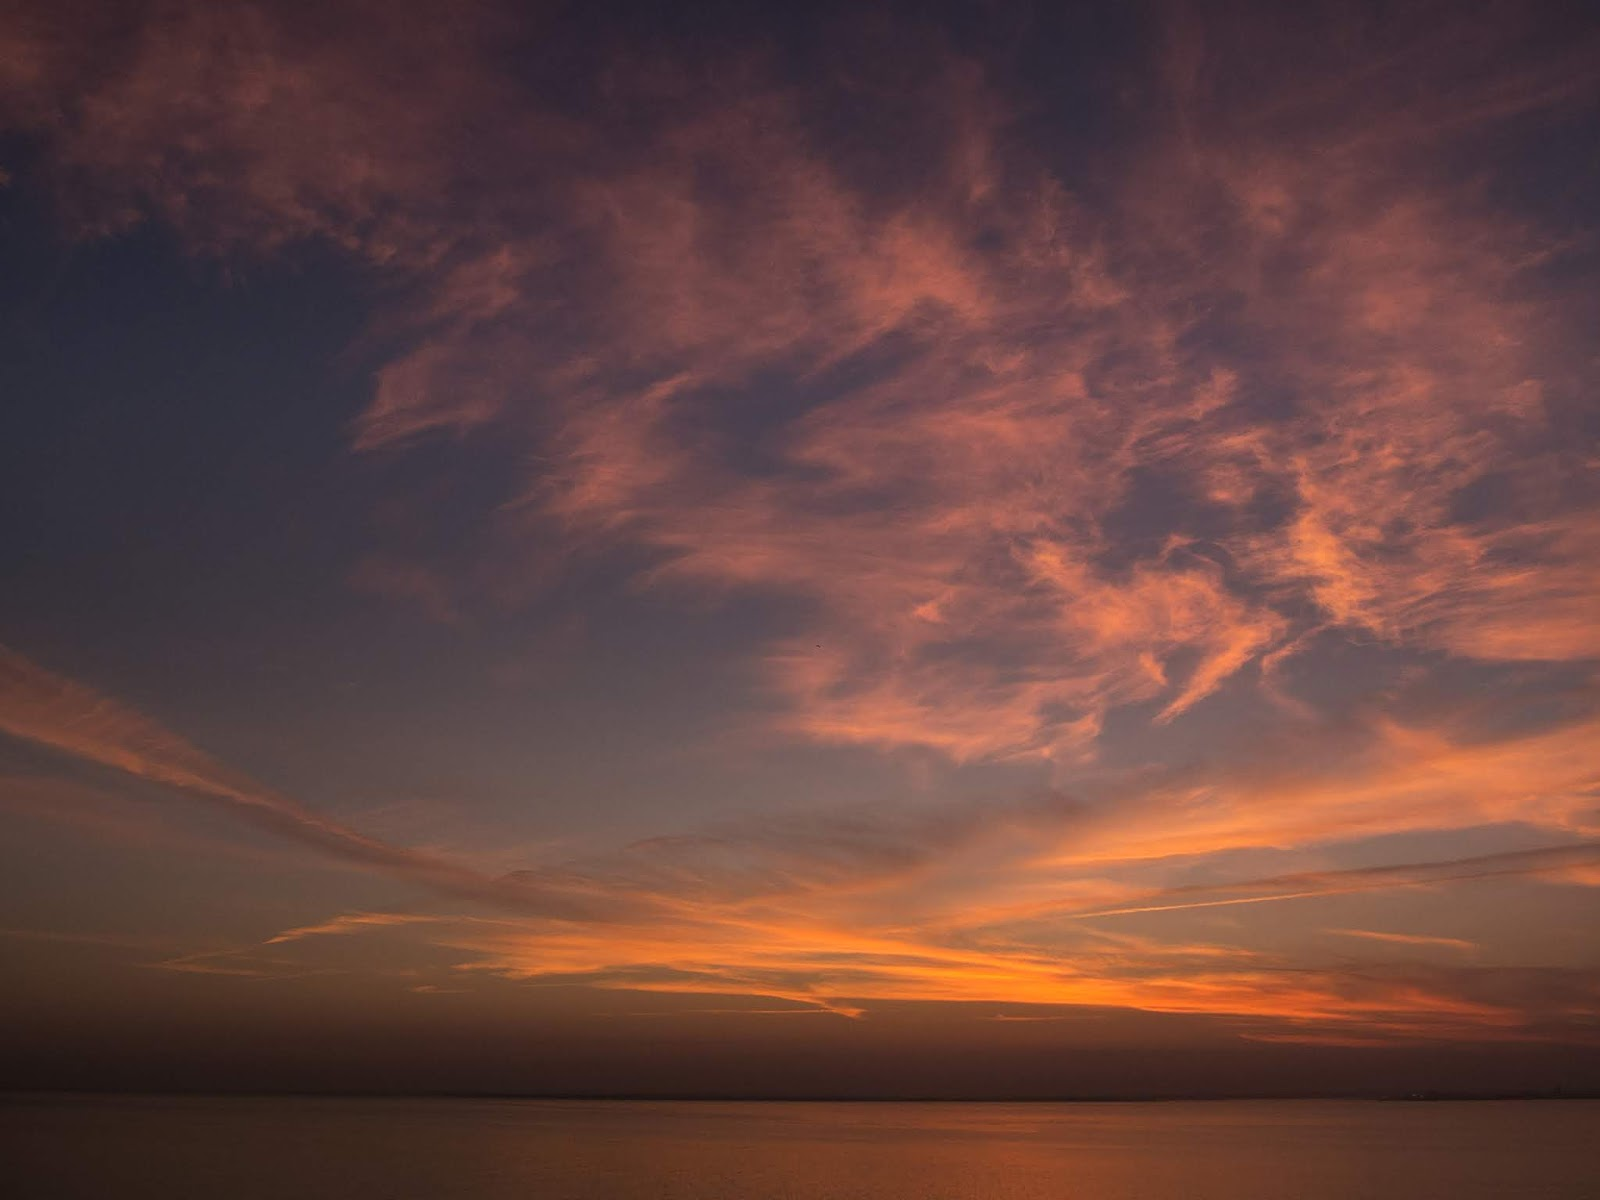 Sunrise clouds over the water captured in Lisbon.